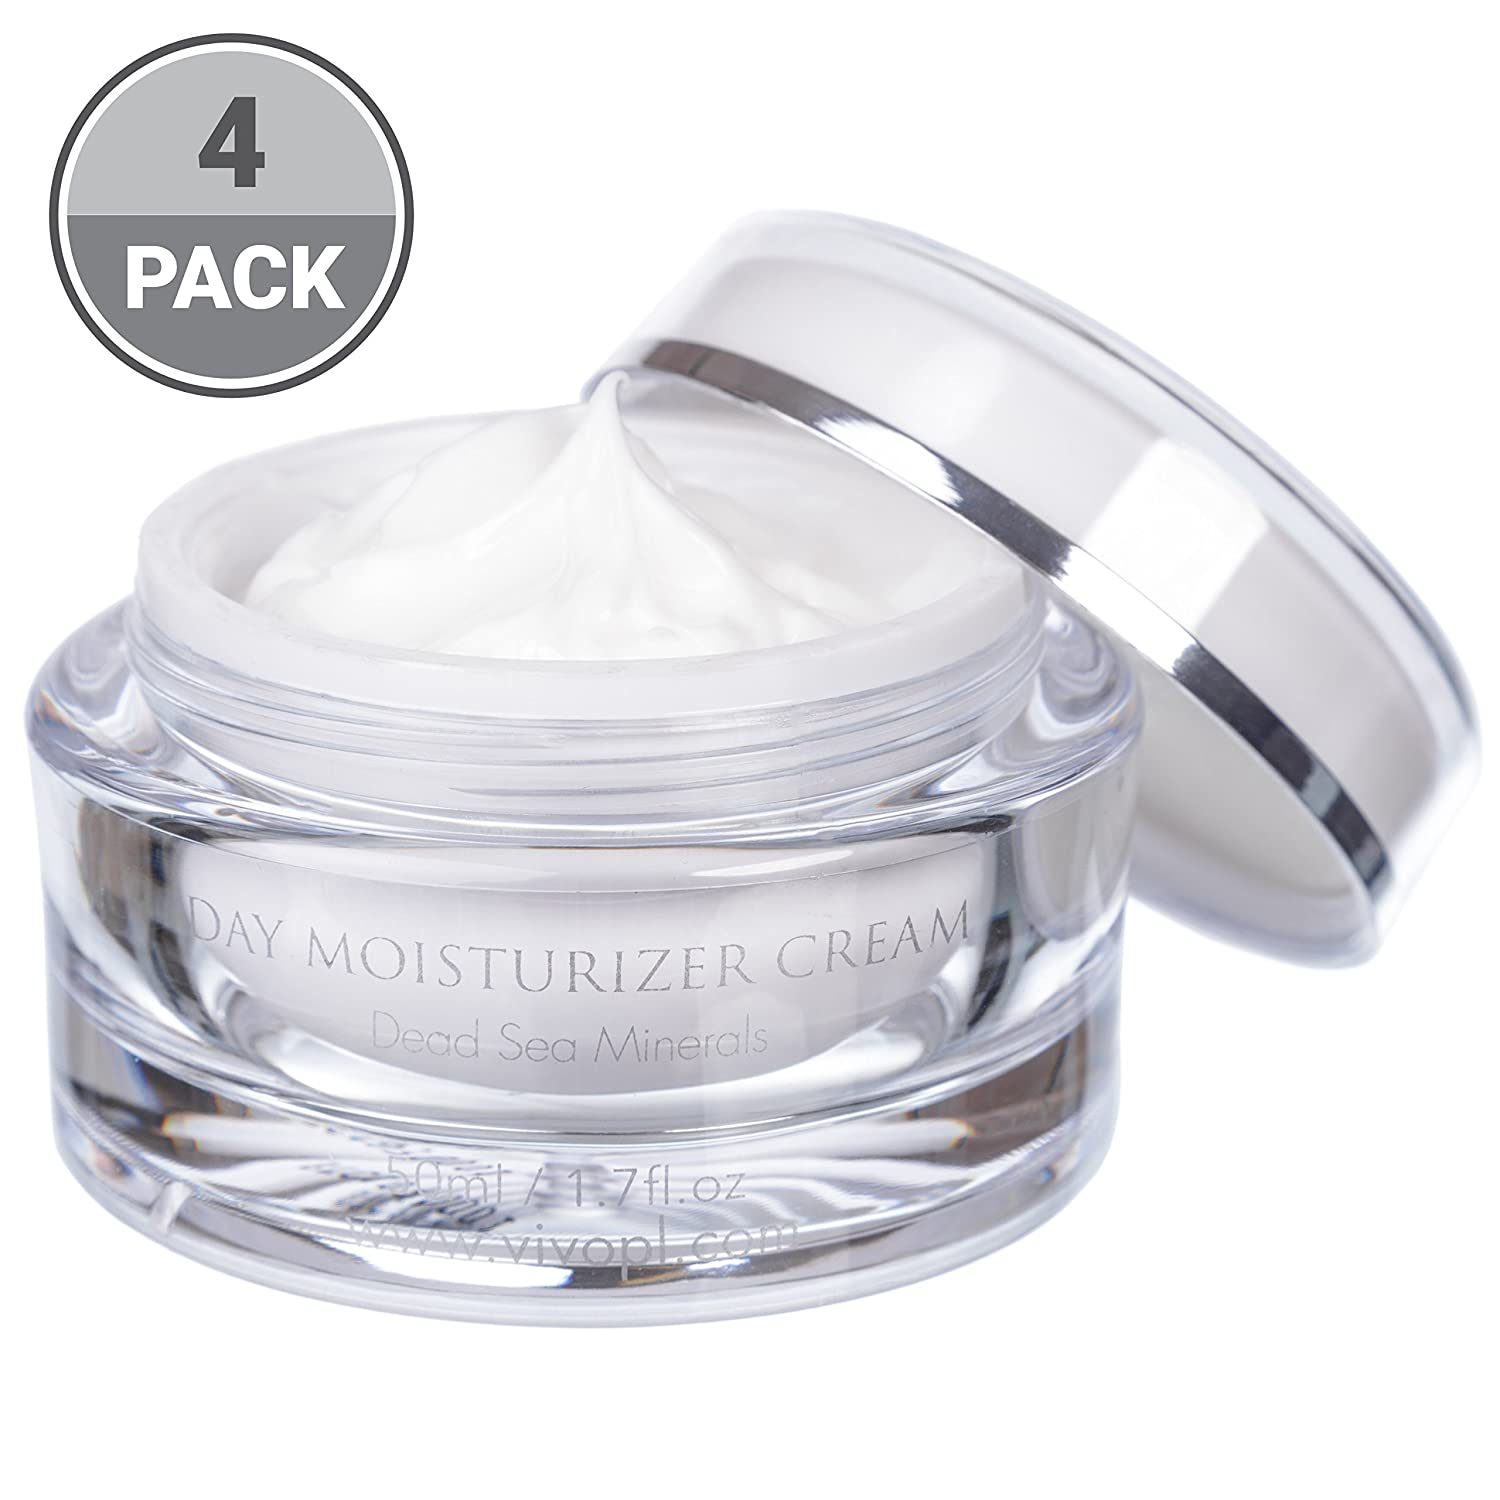 Vivo Per Lei Day Cream   Dead Sea Face Cream for Dull, Dry Skin  Moisturizing Day Cream with Shea Butter   Non Greasy Day Moisturizer   Hydrating Face Cream for Women  Beautiful Skin Needs No Miracle 609728457518